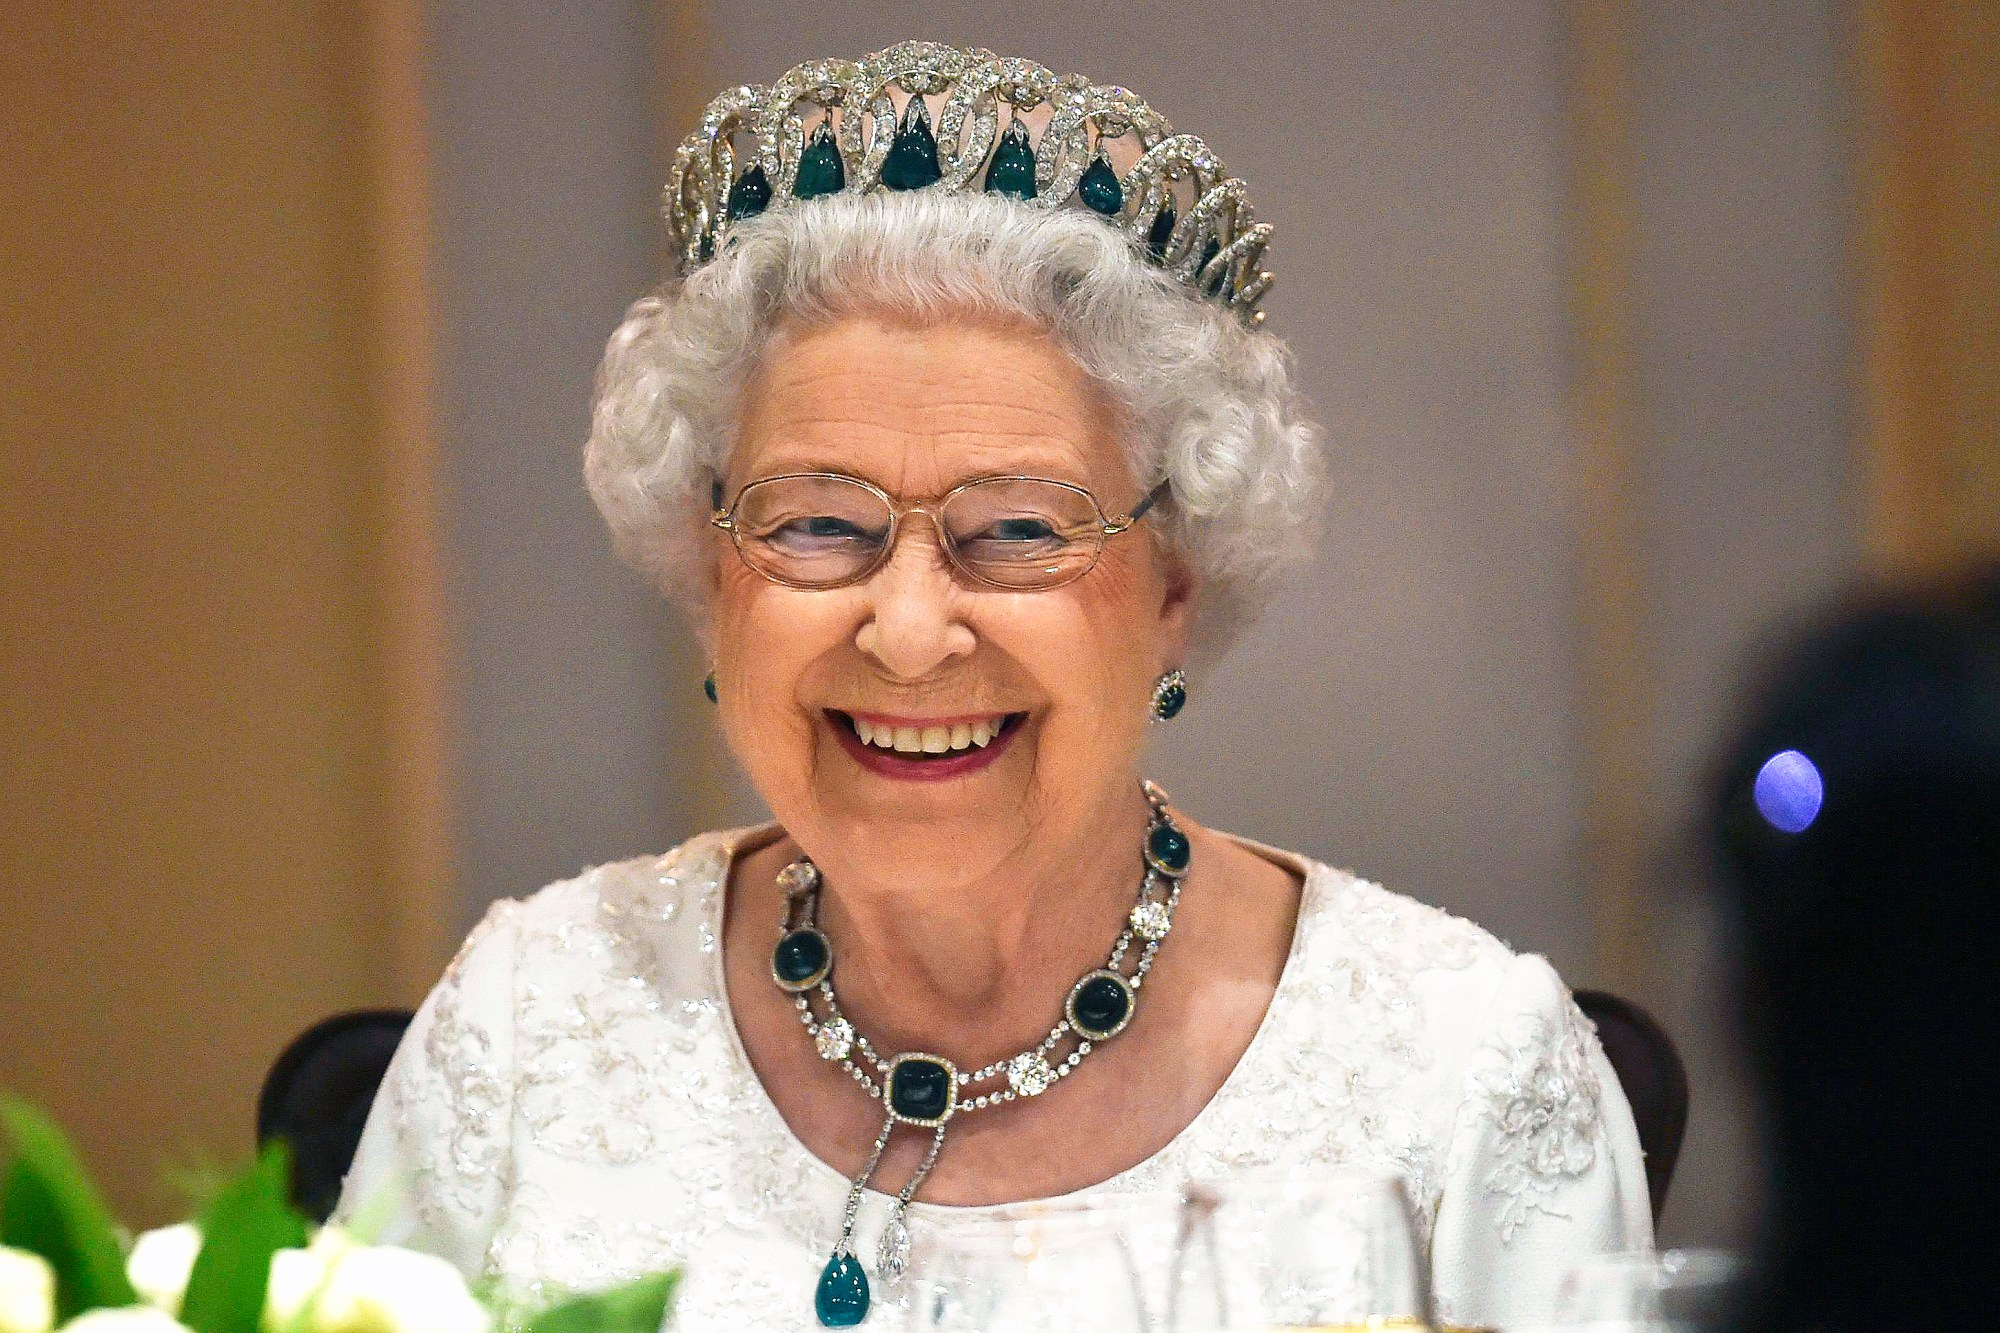 Britain's Queen Elizabeth smiles as she attends a dinner at the Corinthia Palace Hotel during the Commonwealth Heads of State Meeting in Attard Malta on november 27, 2015. Photo by Toby Melville/PA/ABACAPRESS.COM